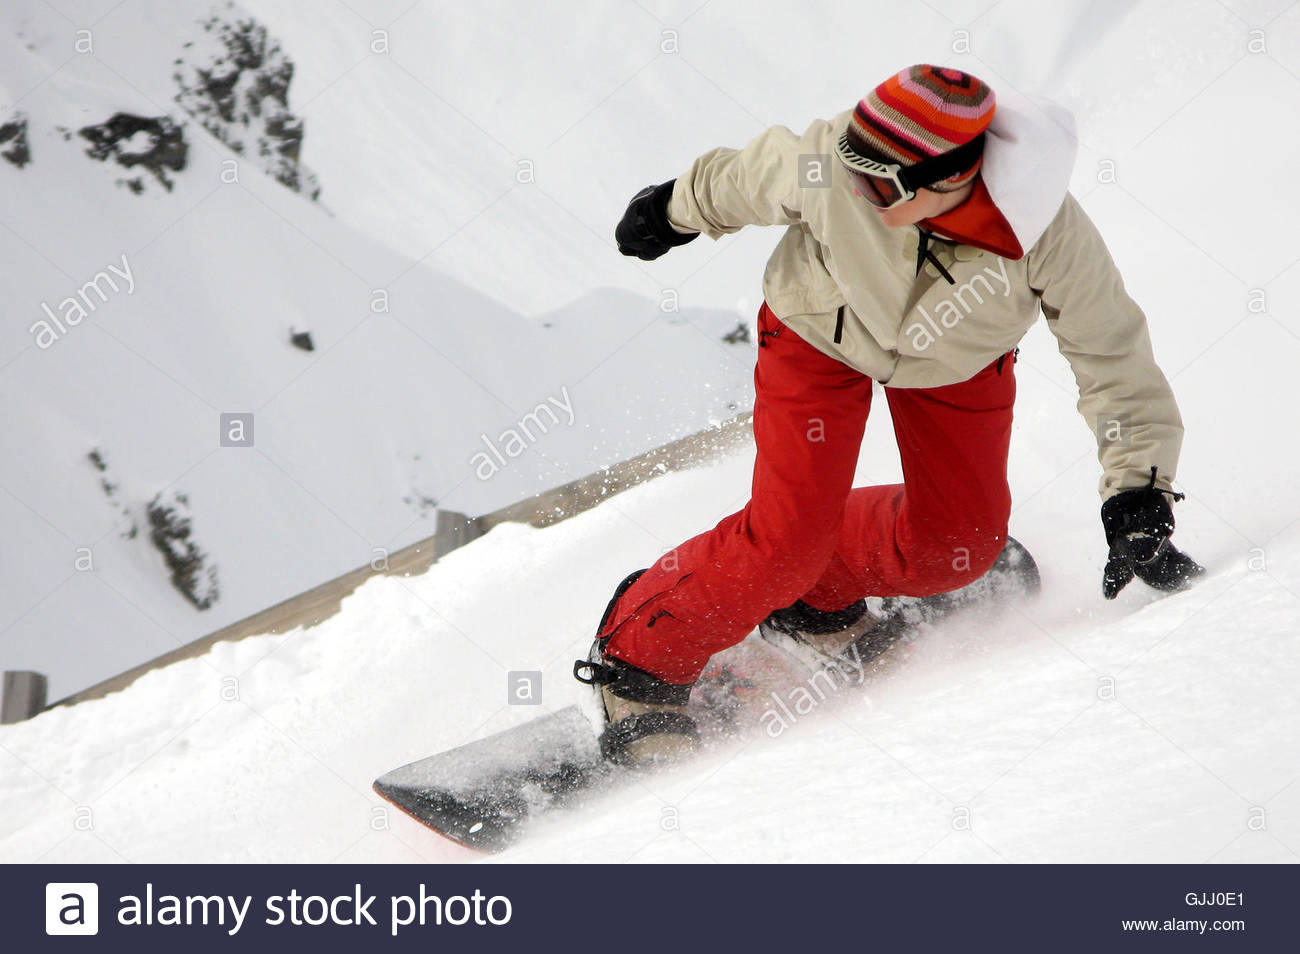 steep descent - Stock Image